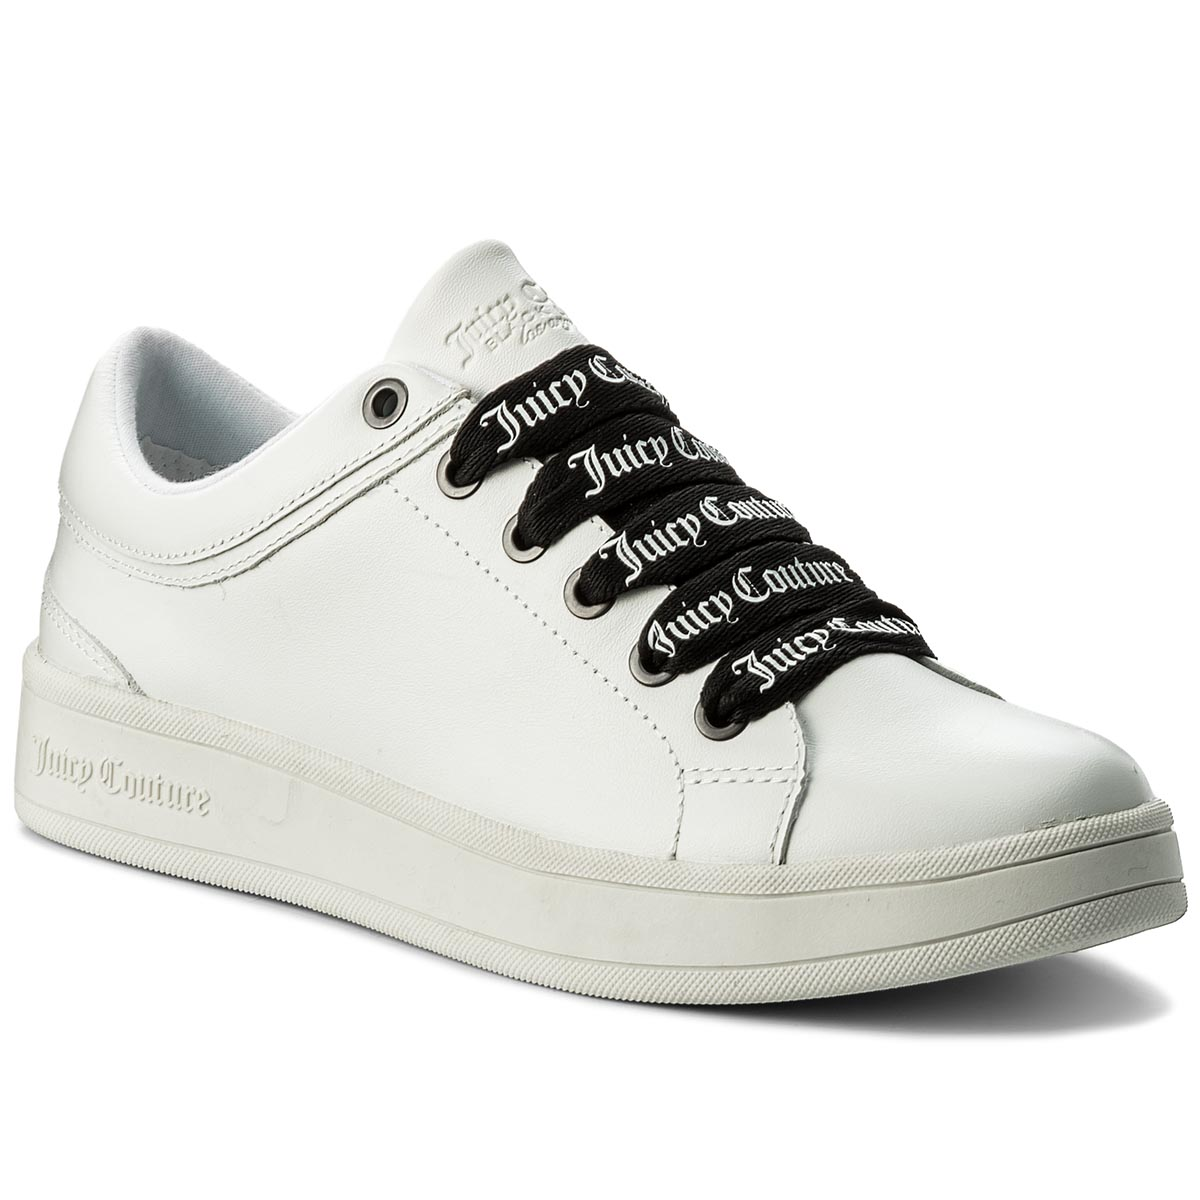 Sneakers JUICY COUTURE BLACK LABEL - Janel JB181 White